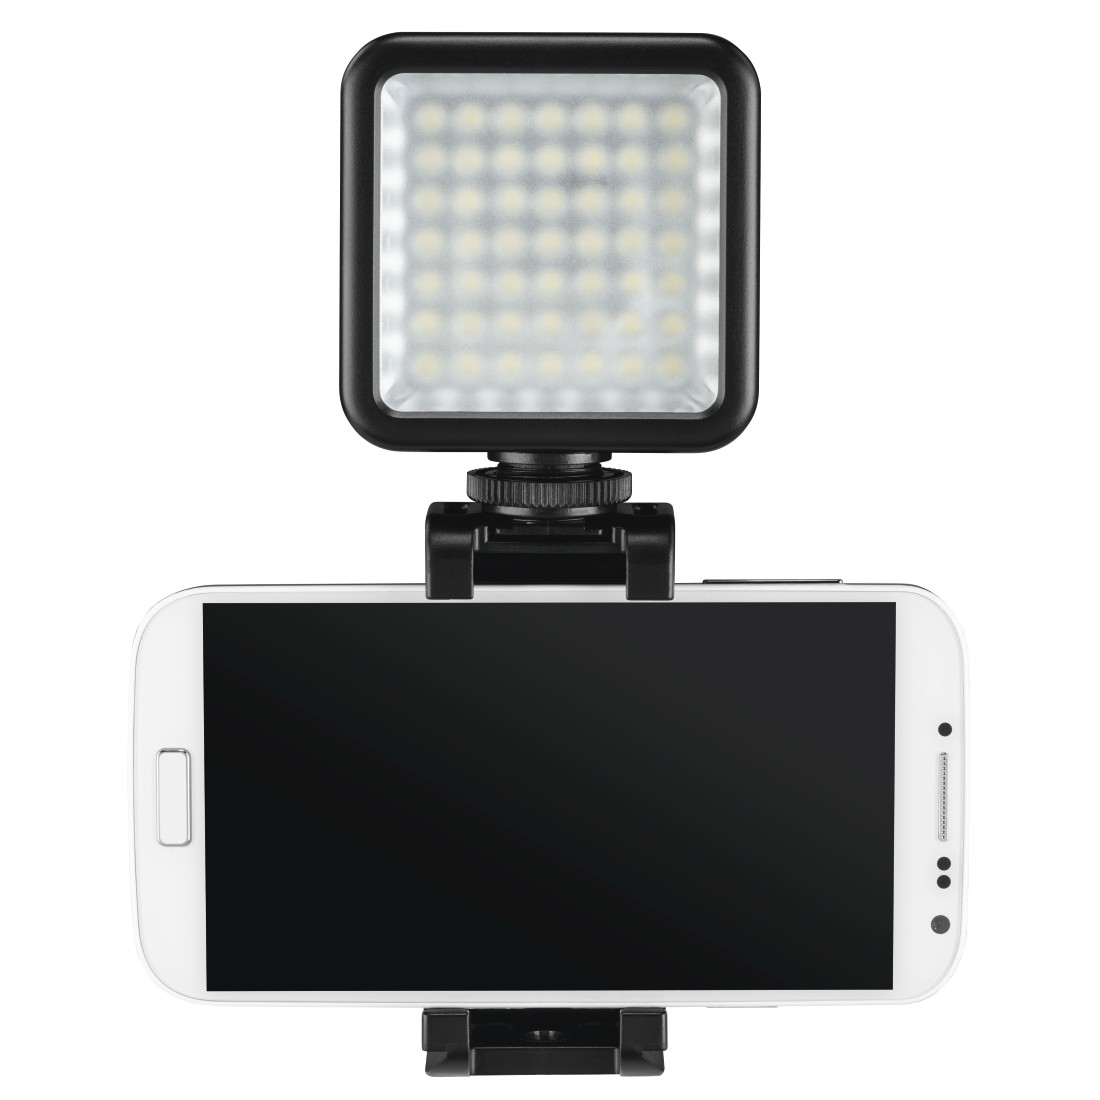 "awx2 High-Res Appliance 2 - Hama, ""49 BD"" LED Lights for Smartphone, Photo and Video Cameras"